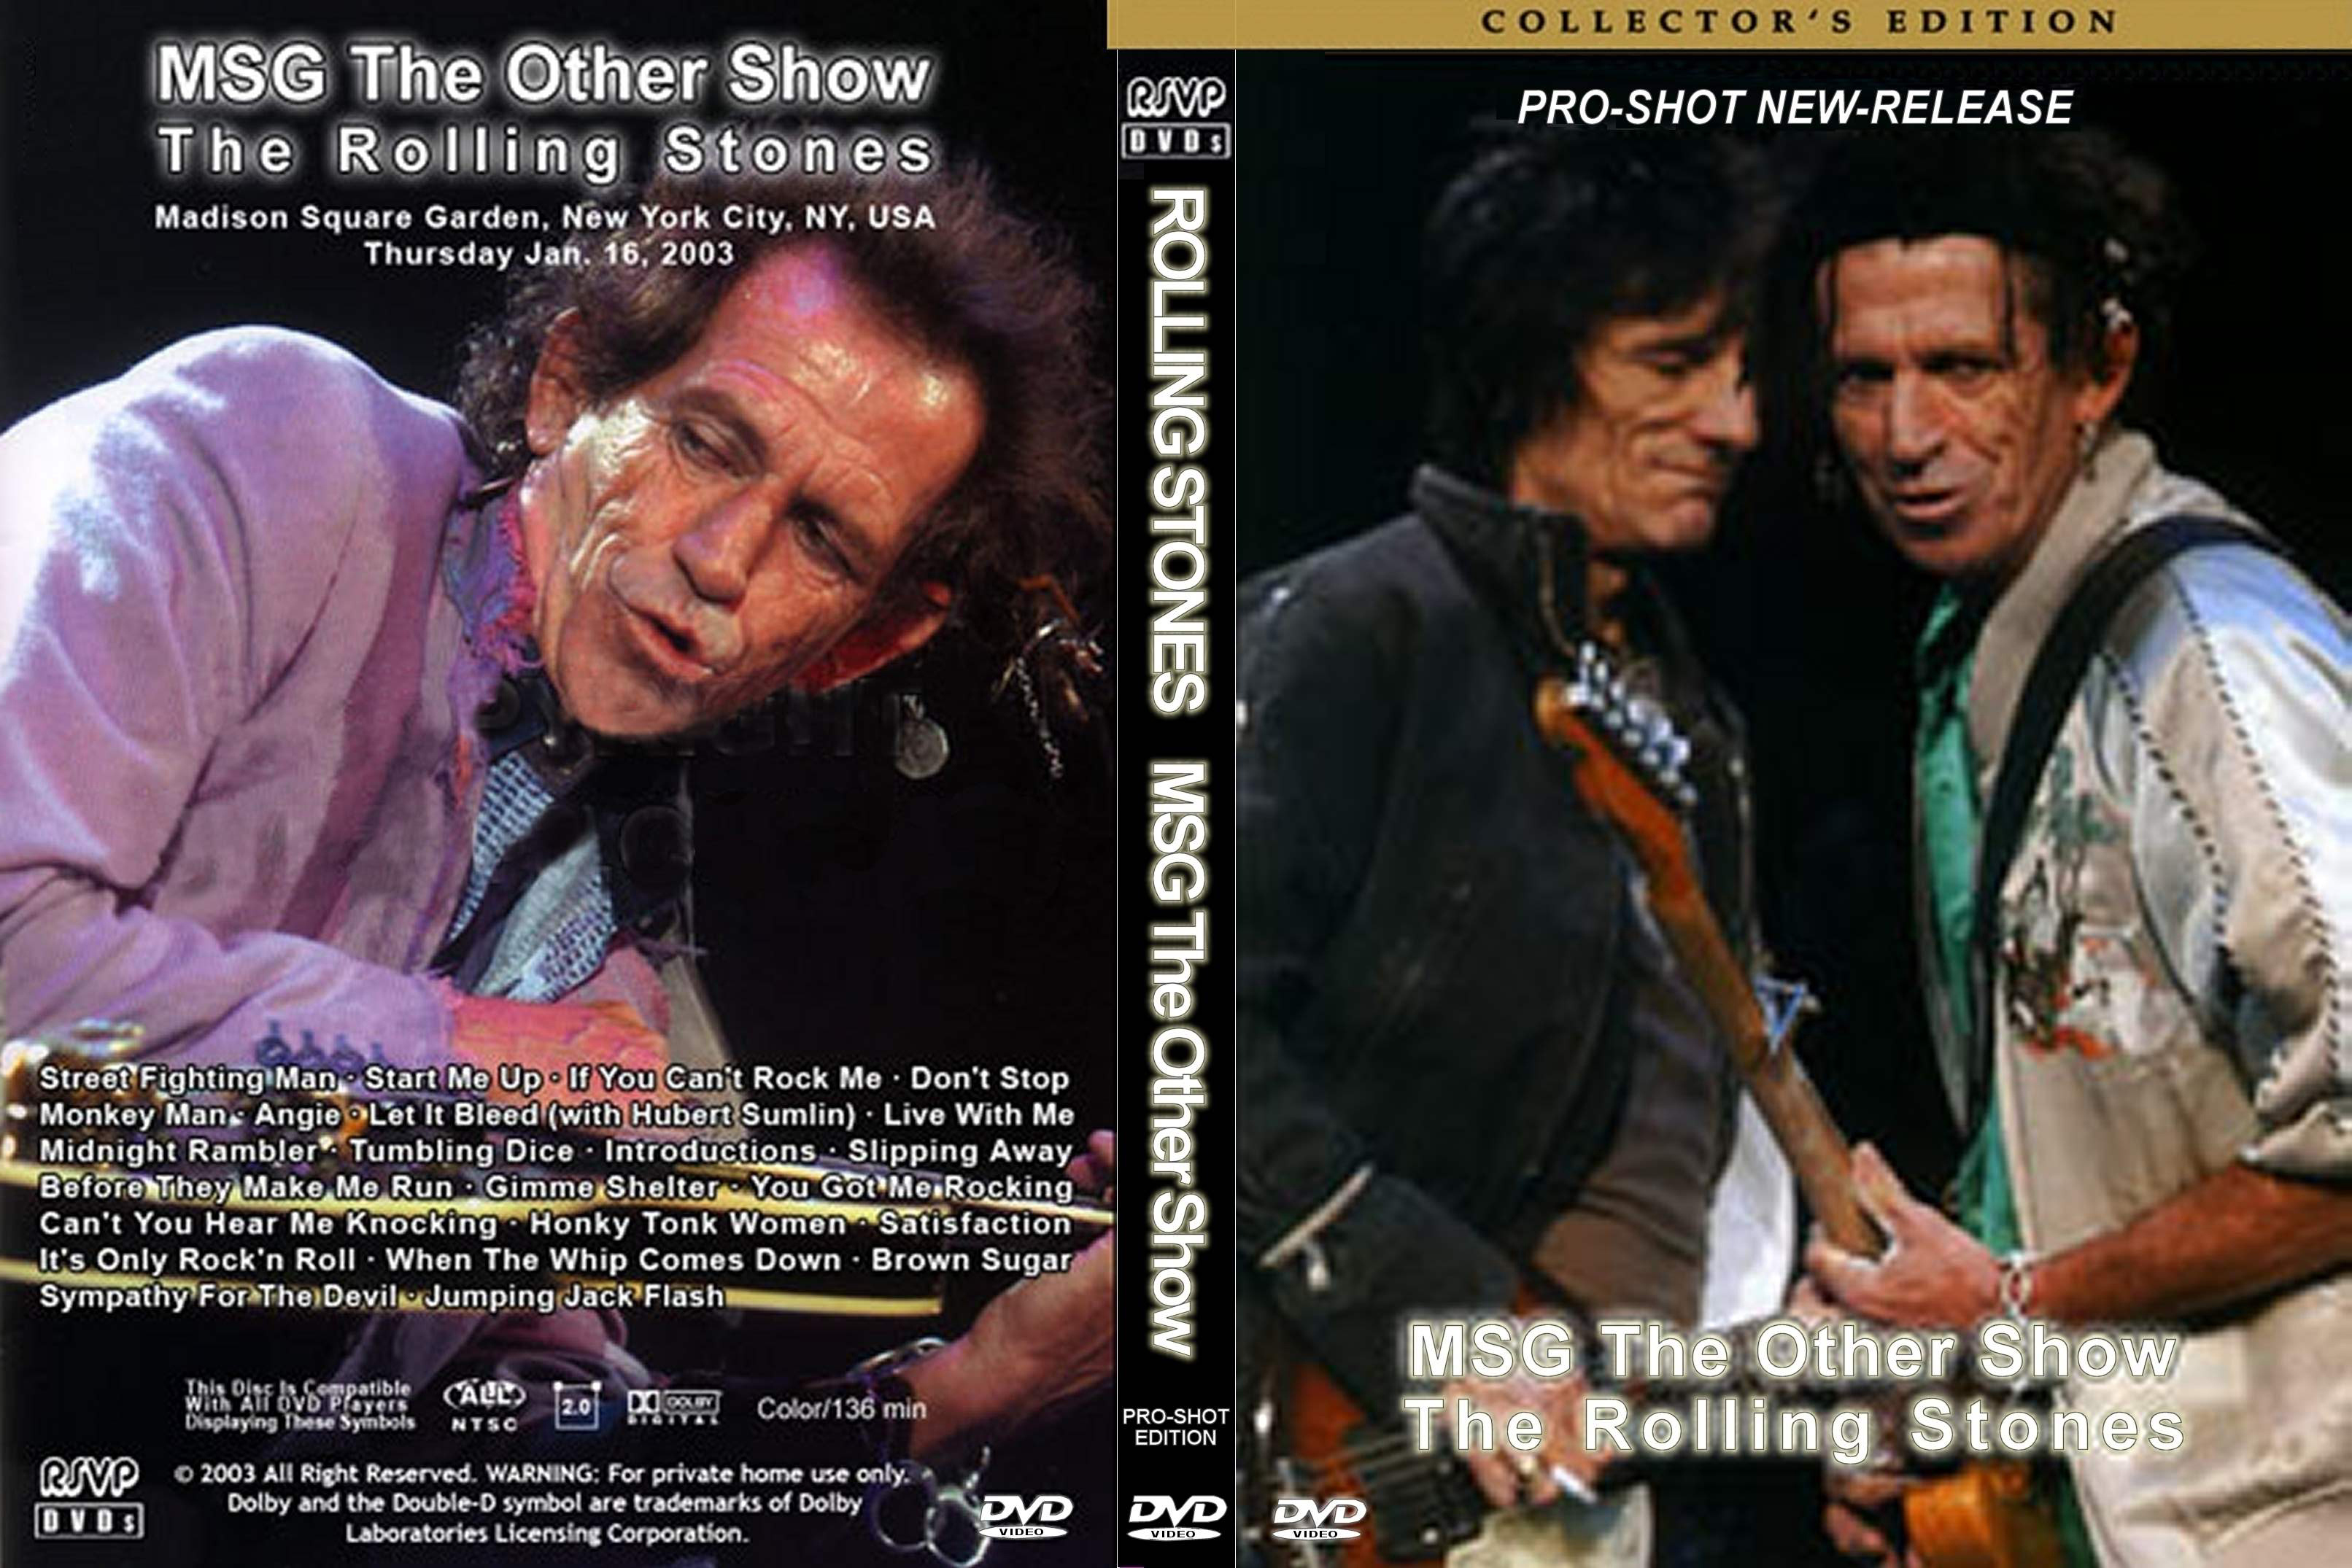 stones__2003-01-16_MSG_The_Other_Show_PROSHOT.jpg